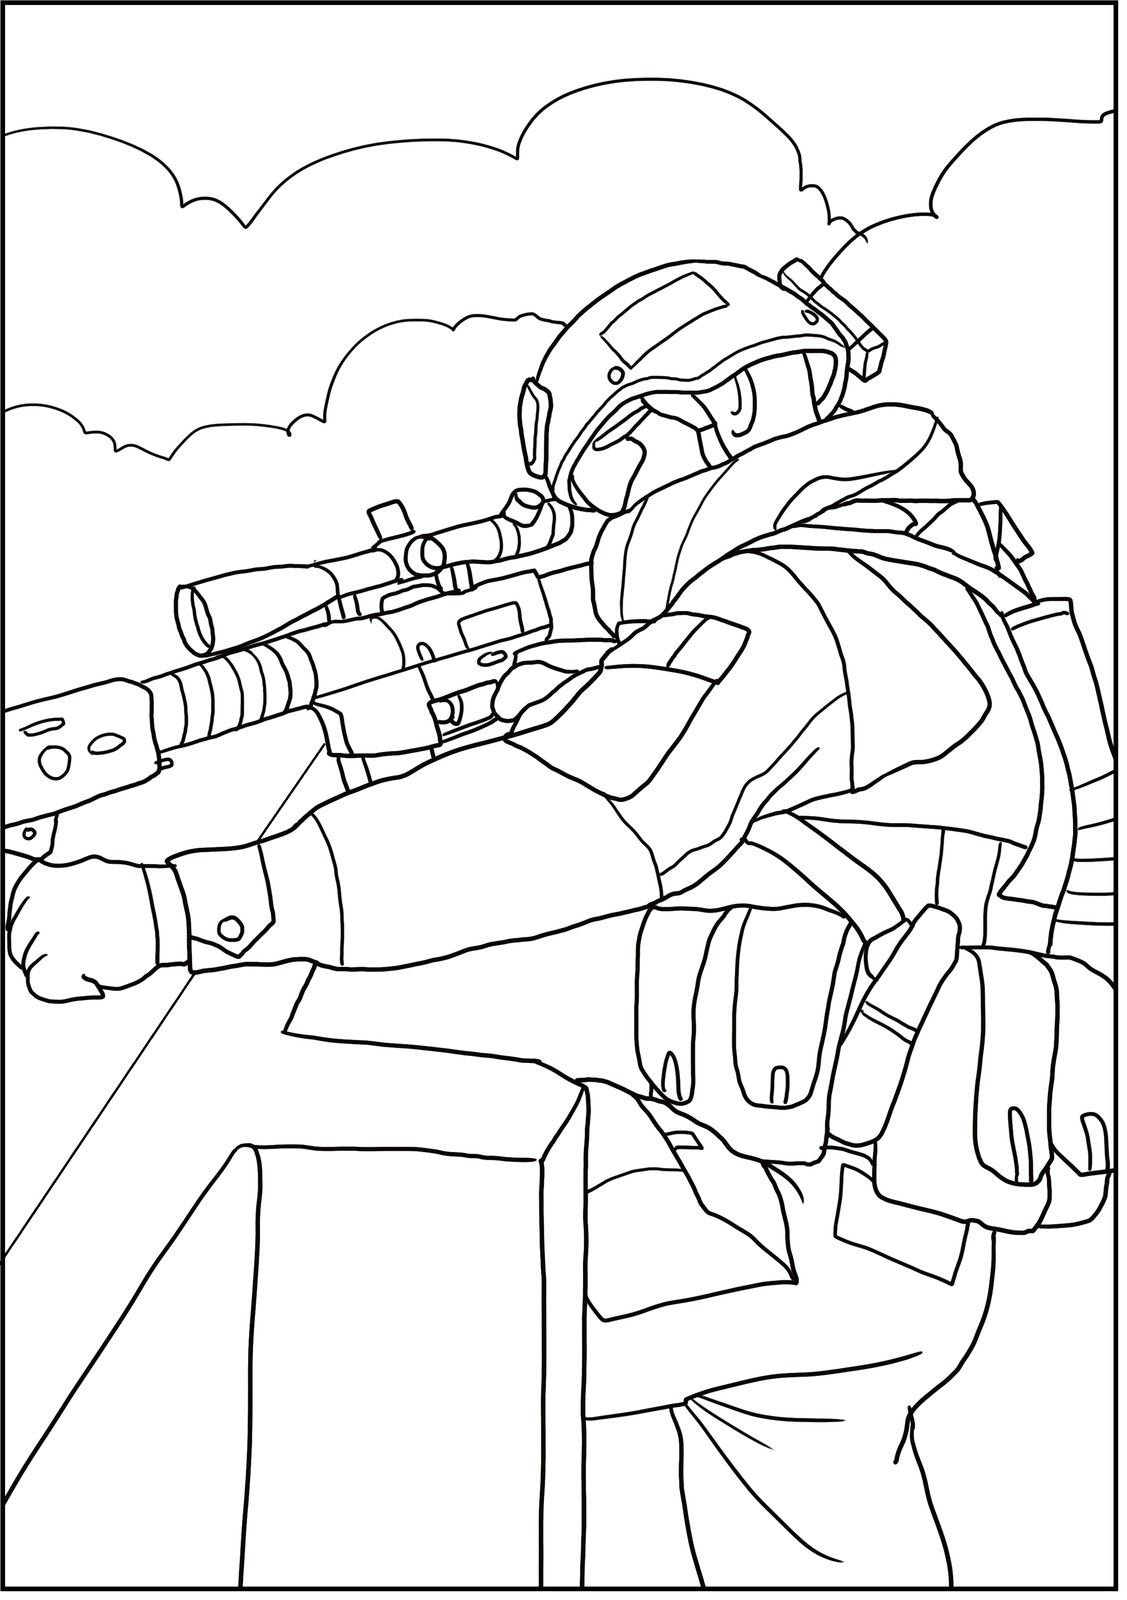 Navy Seals Military Coloring Book Coloring Books American Special Forces Usa Patriotic